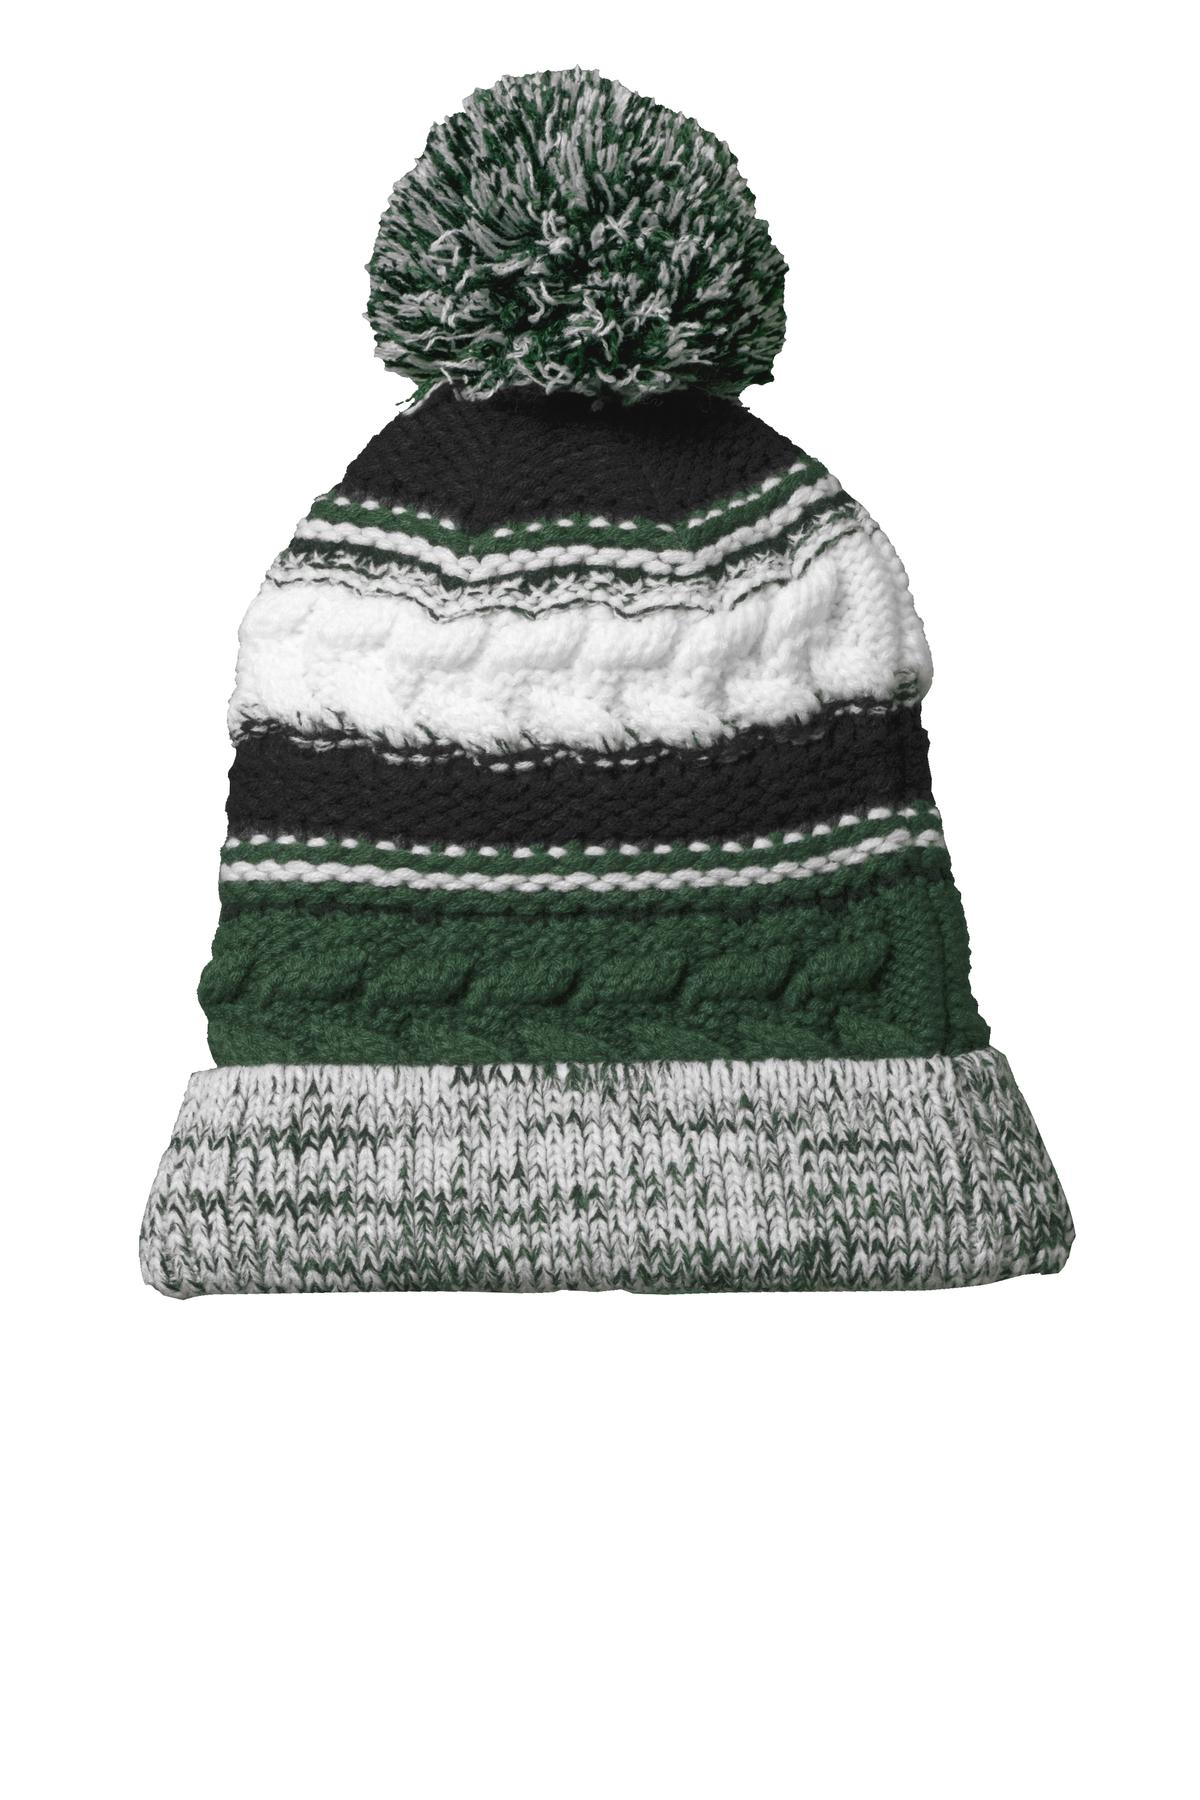 Sport-Tek ®  Pom Pom Team Beanie. STC21 - Forest Green/ Black/ White